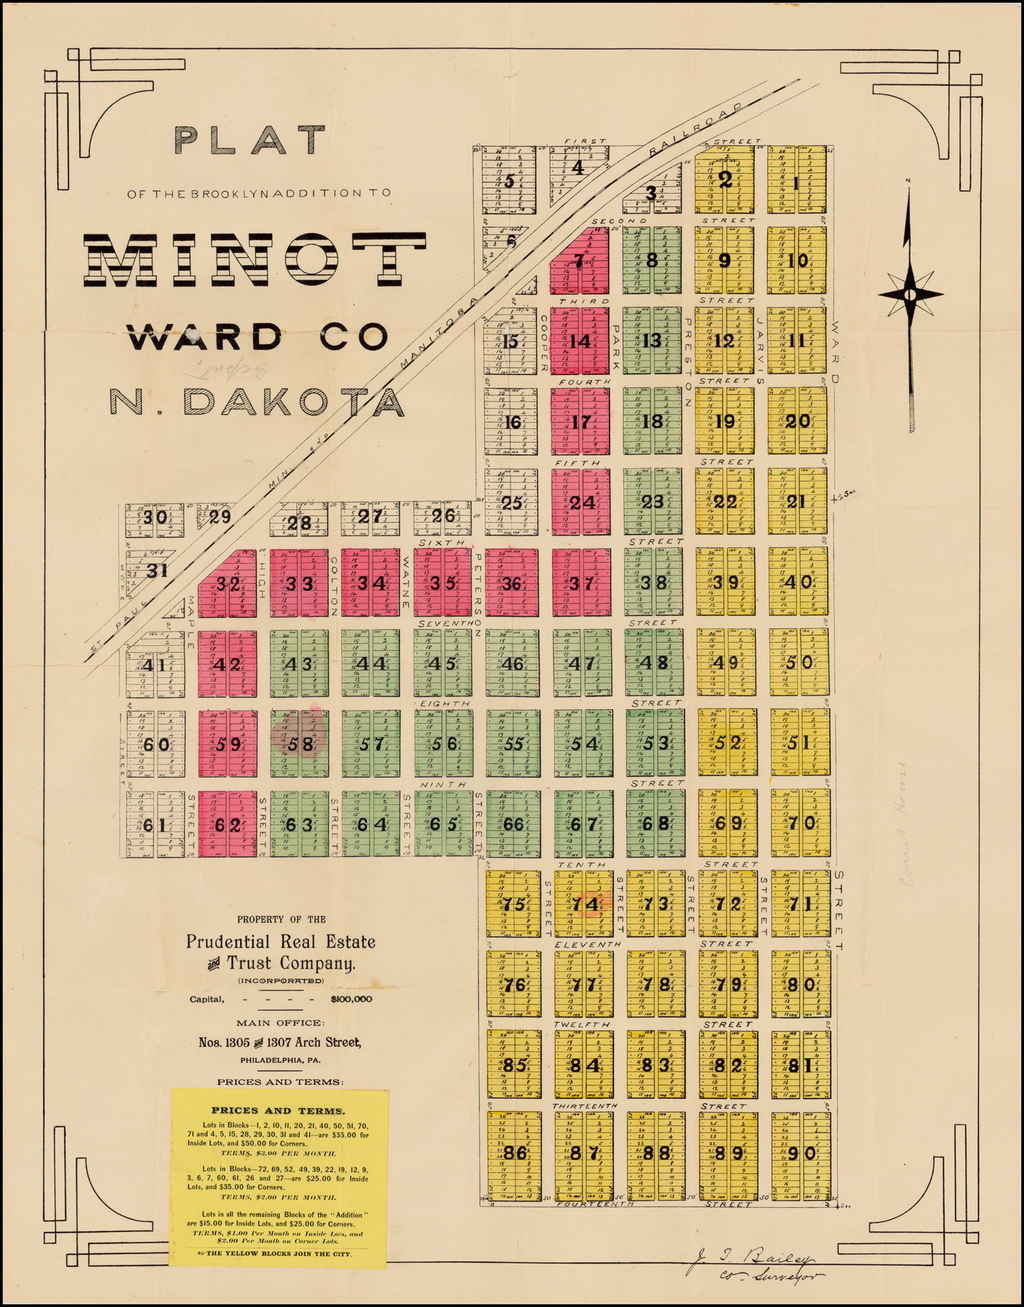 Plat of the Brooklyn Addition To Minot  Ward Co N. Dakota By Anonymous